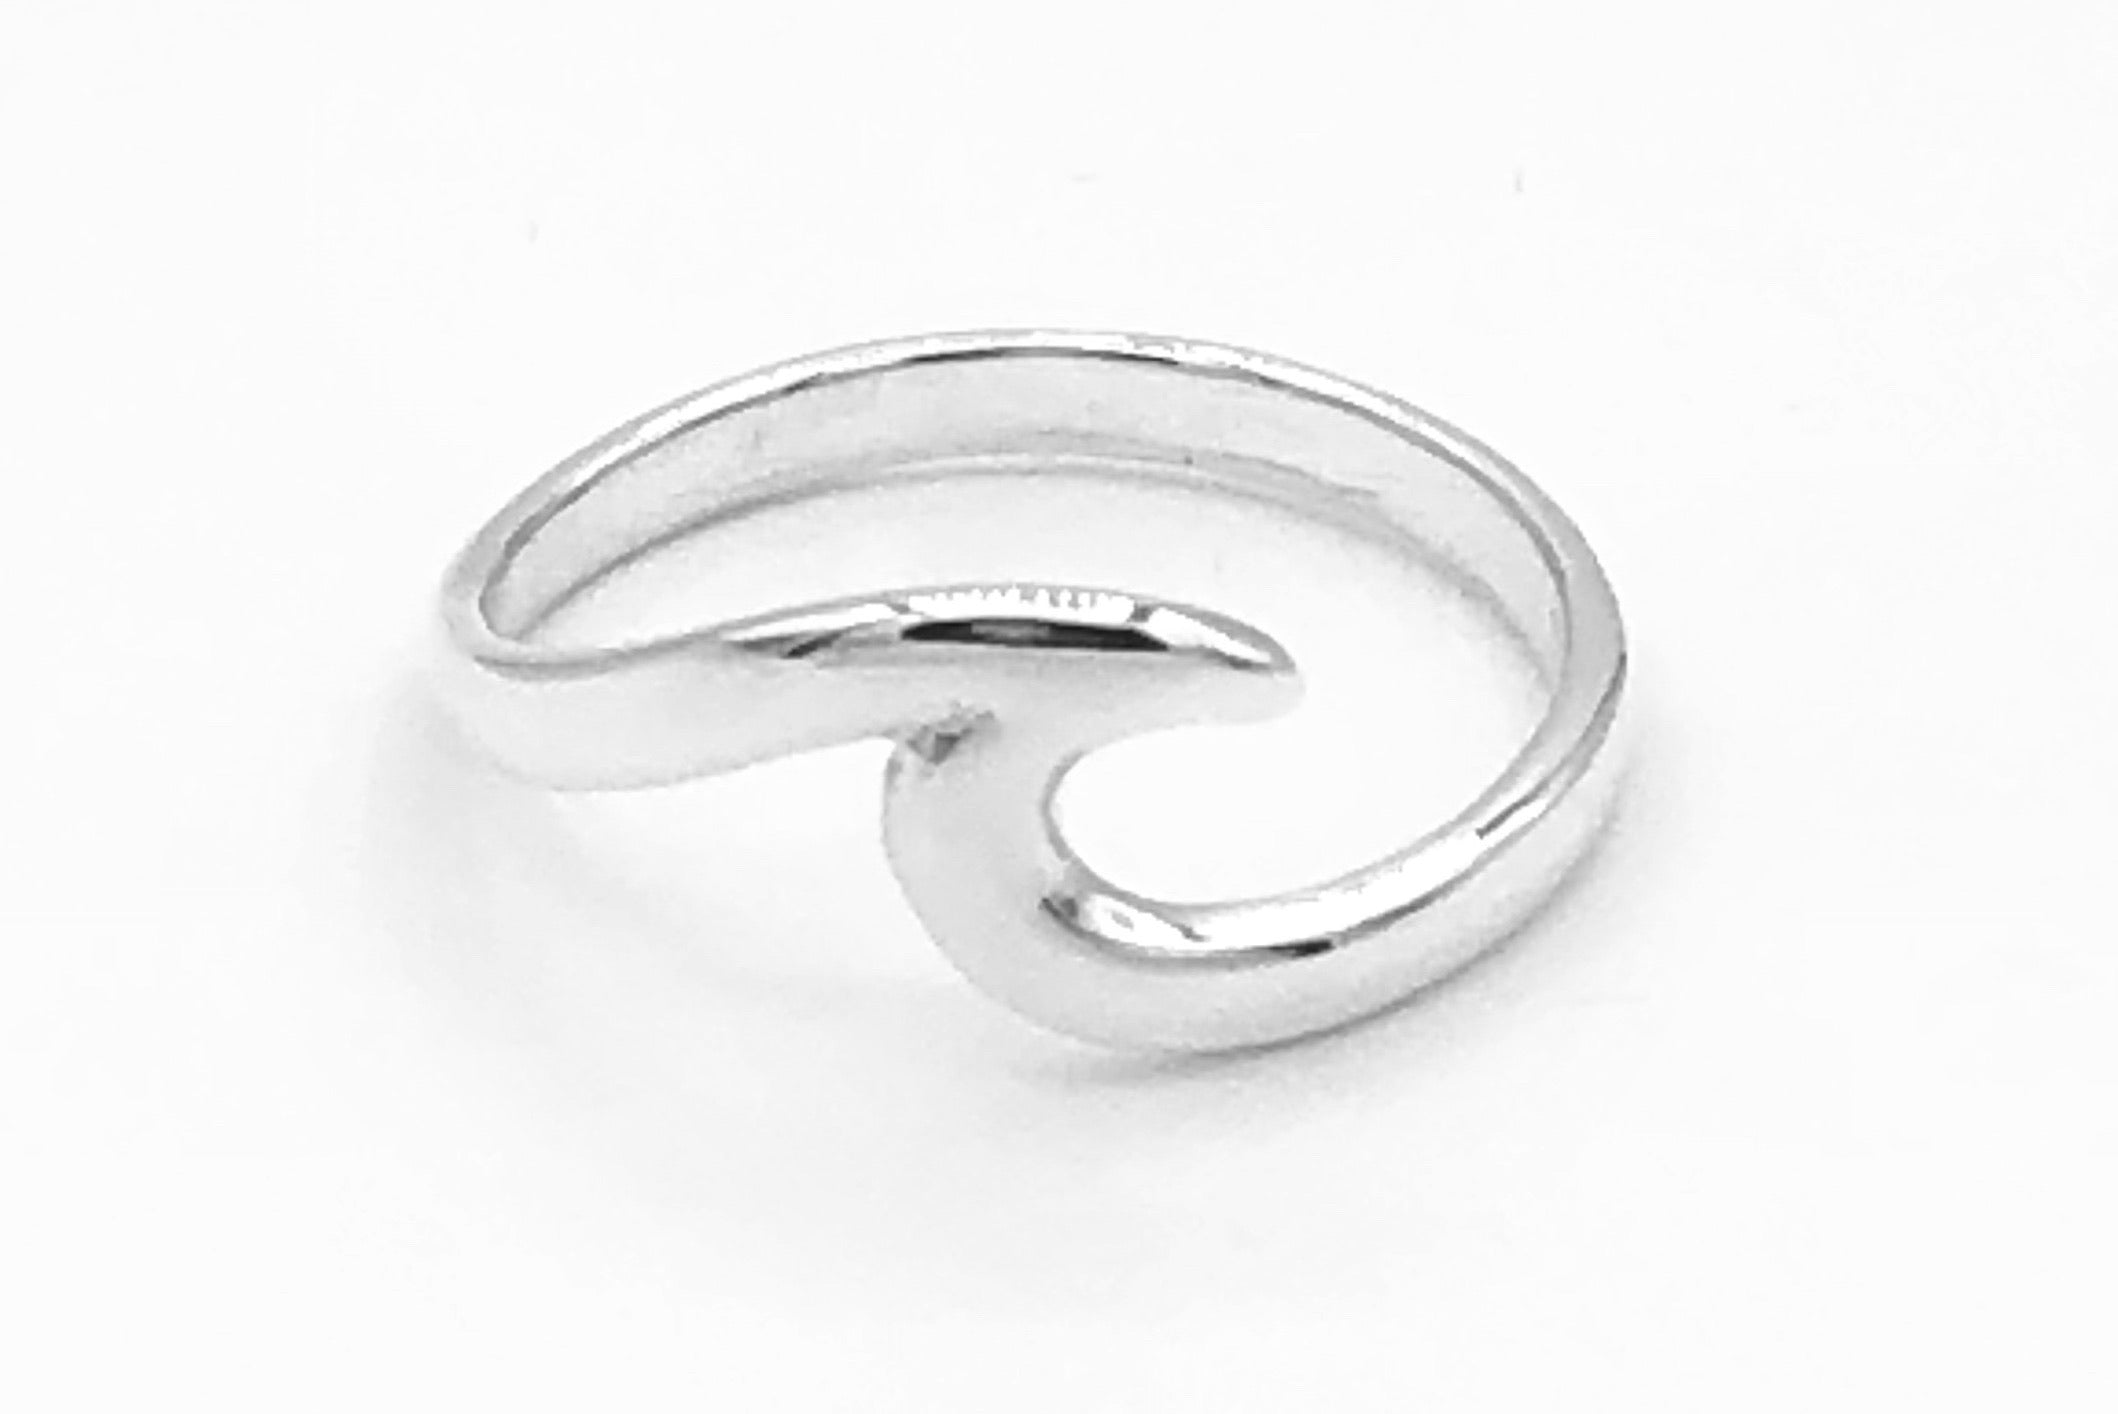 Pamela Wave Ring